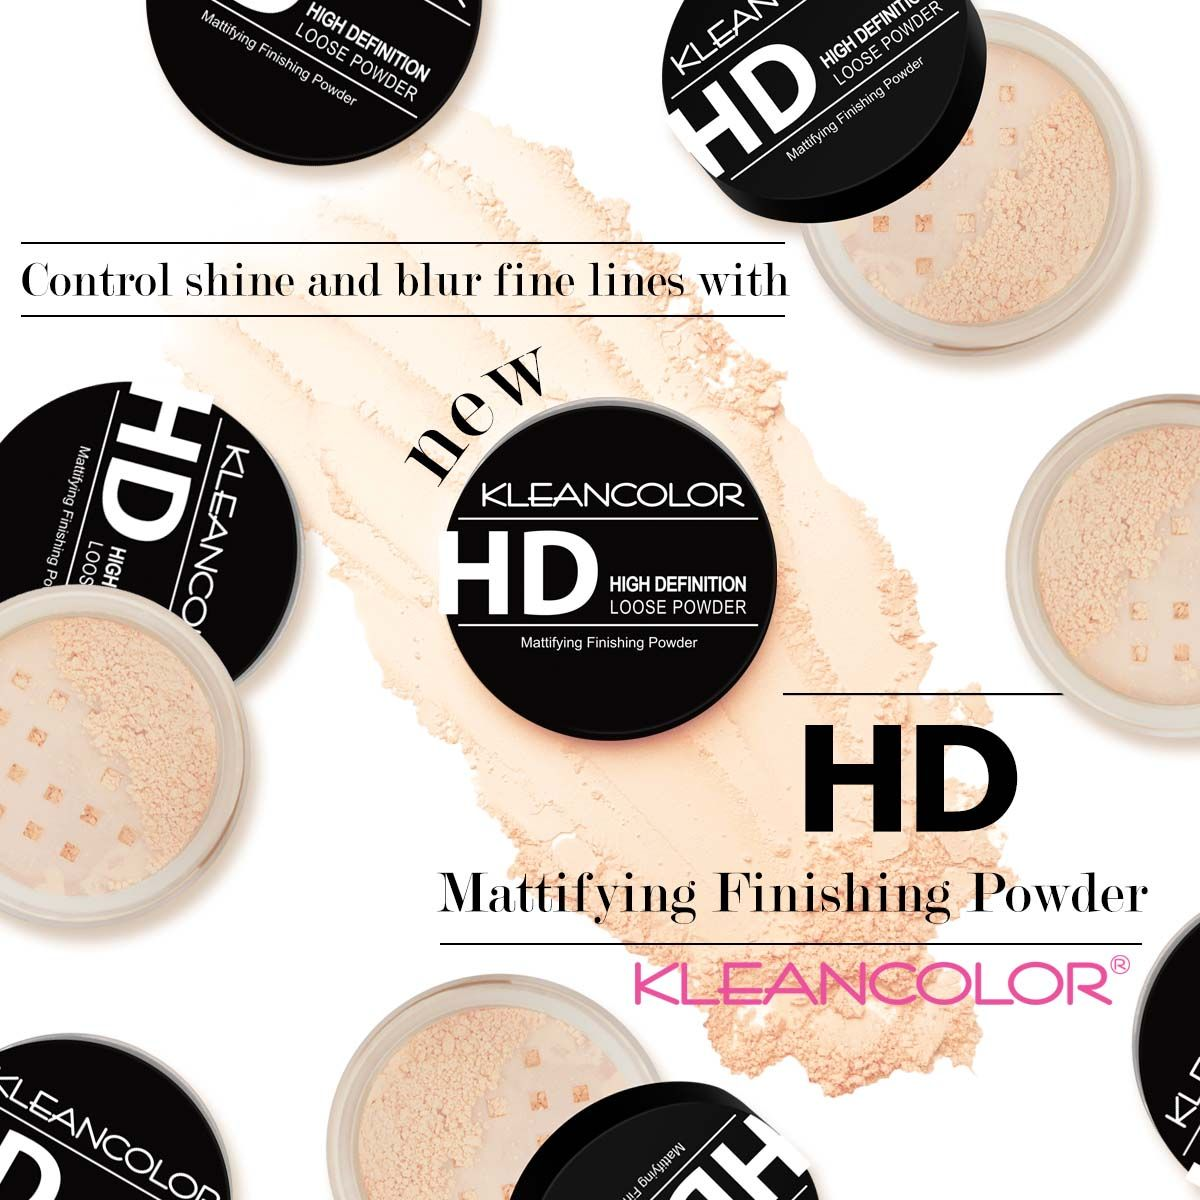 High Definition Matte Setting Loose Powder Kleancolor Loose Powder Finishing Powder How To Apply Foundation